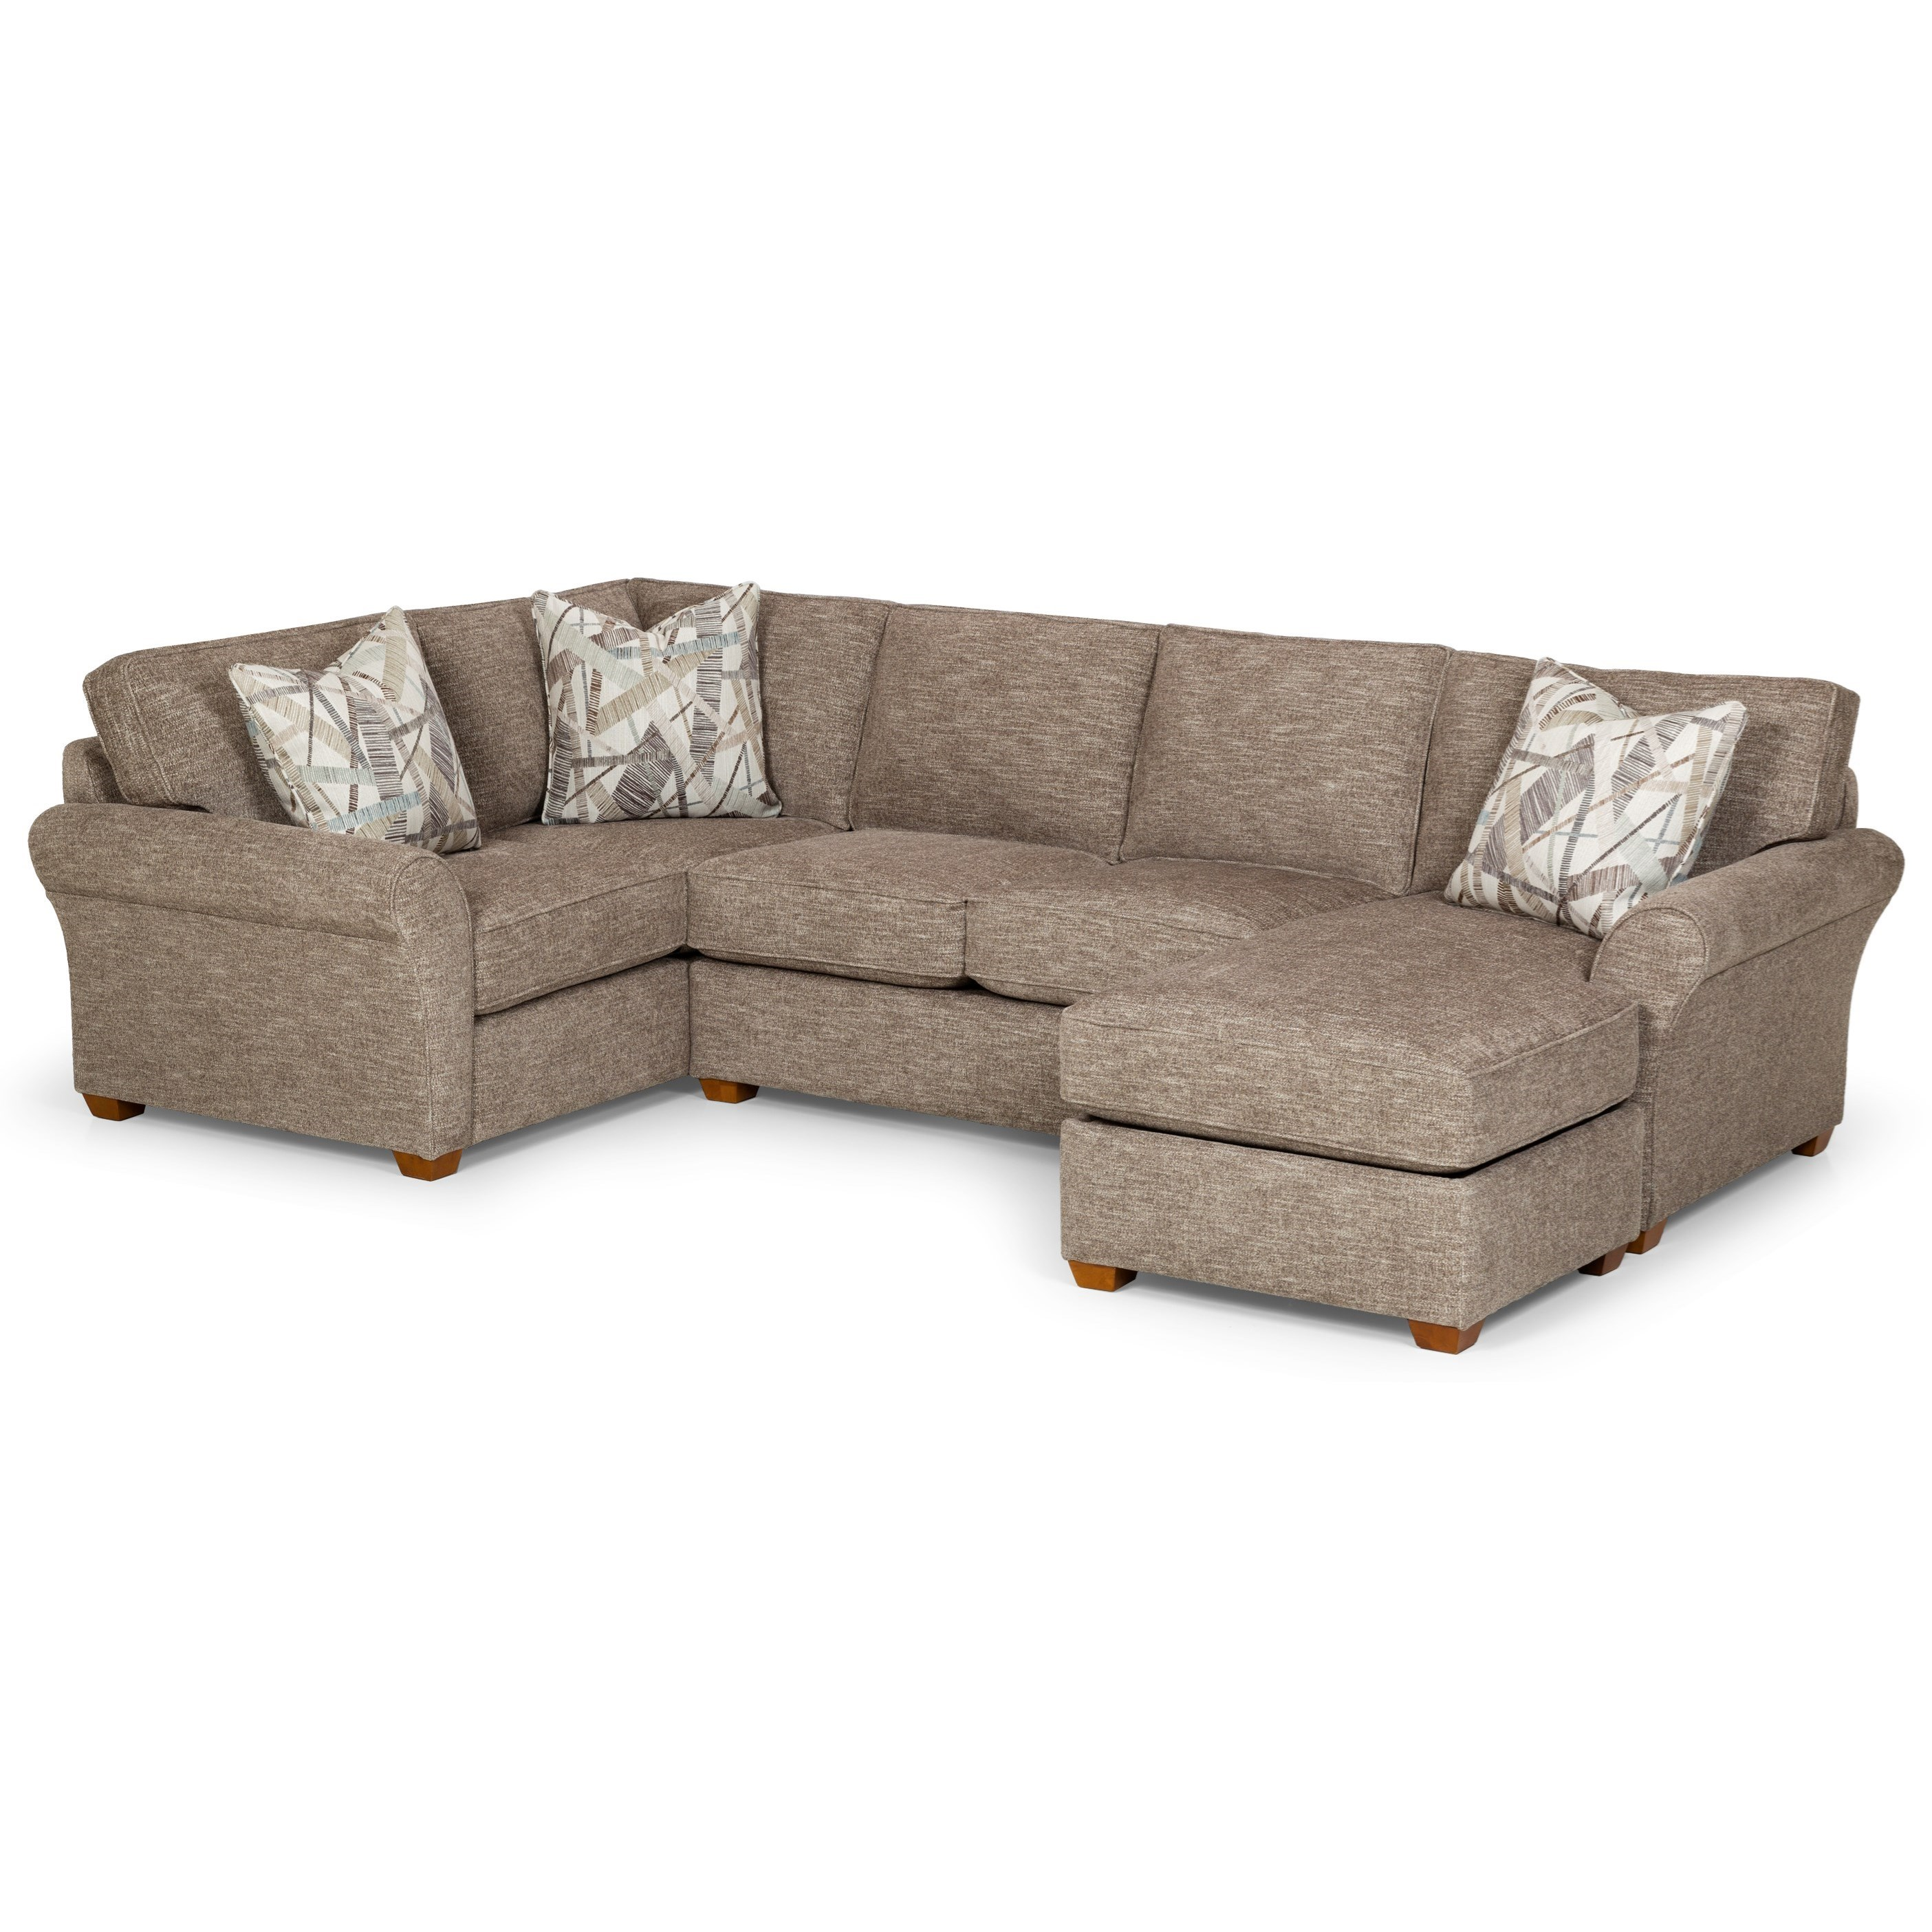 Stanton 460 2 Pc Sectional Sofa - Item Number: 460-95L+45R